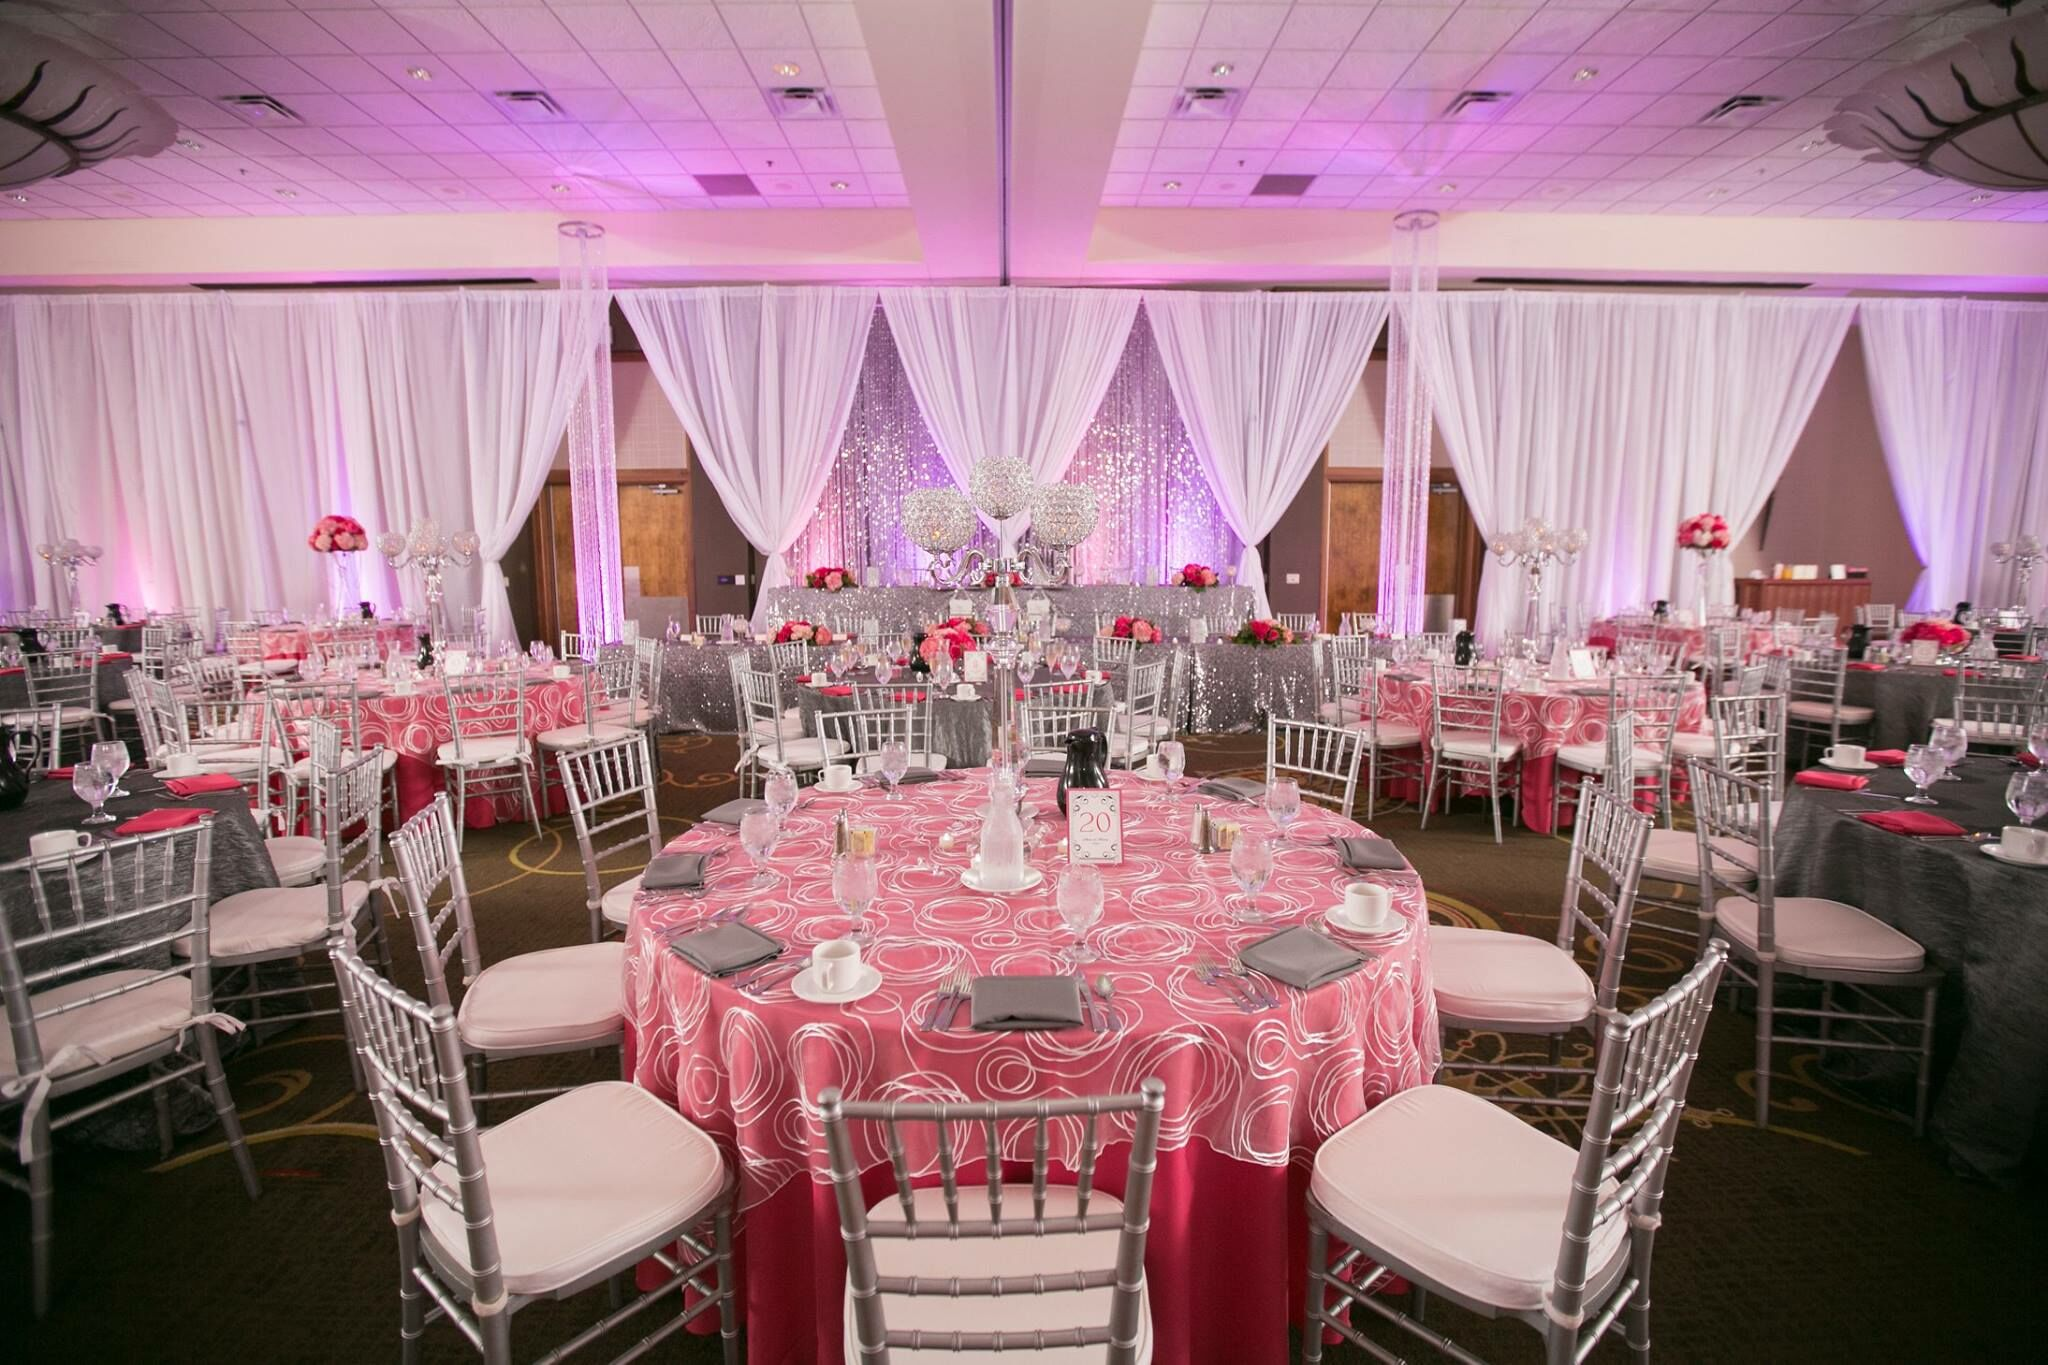 Wedding Venues in Bay City, MI - The Knot